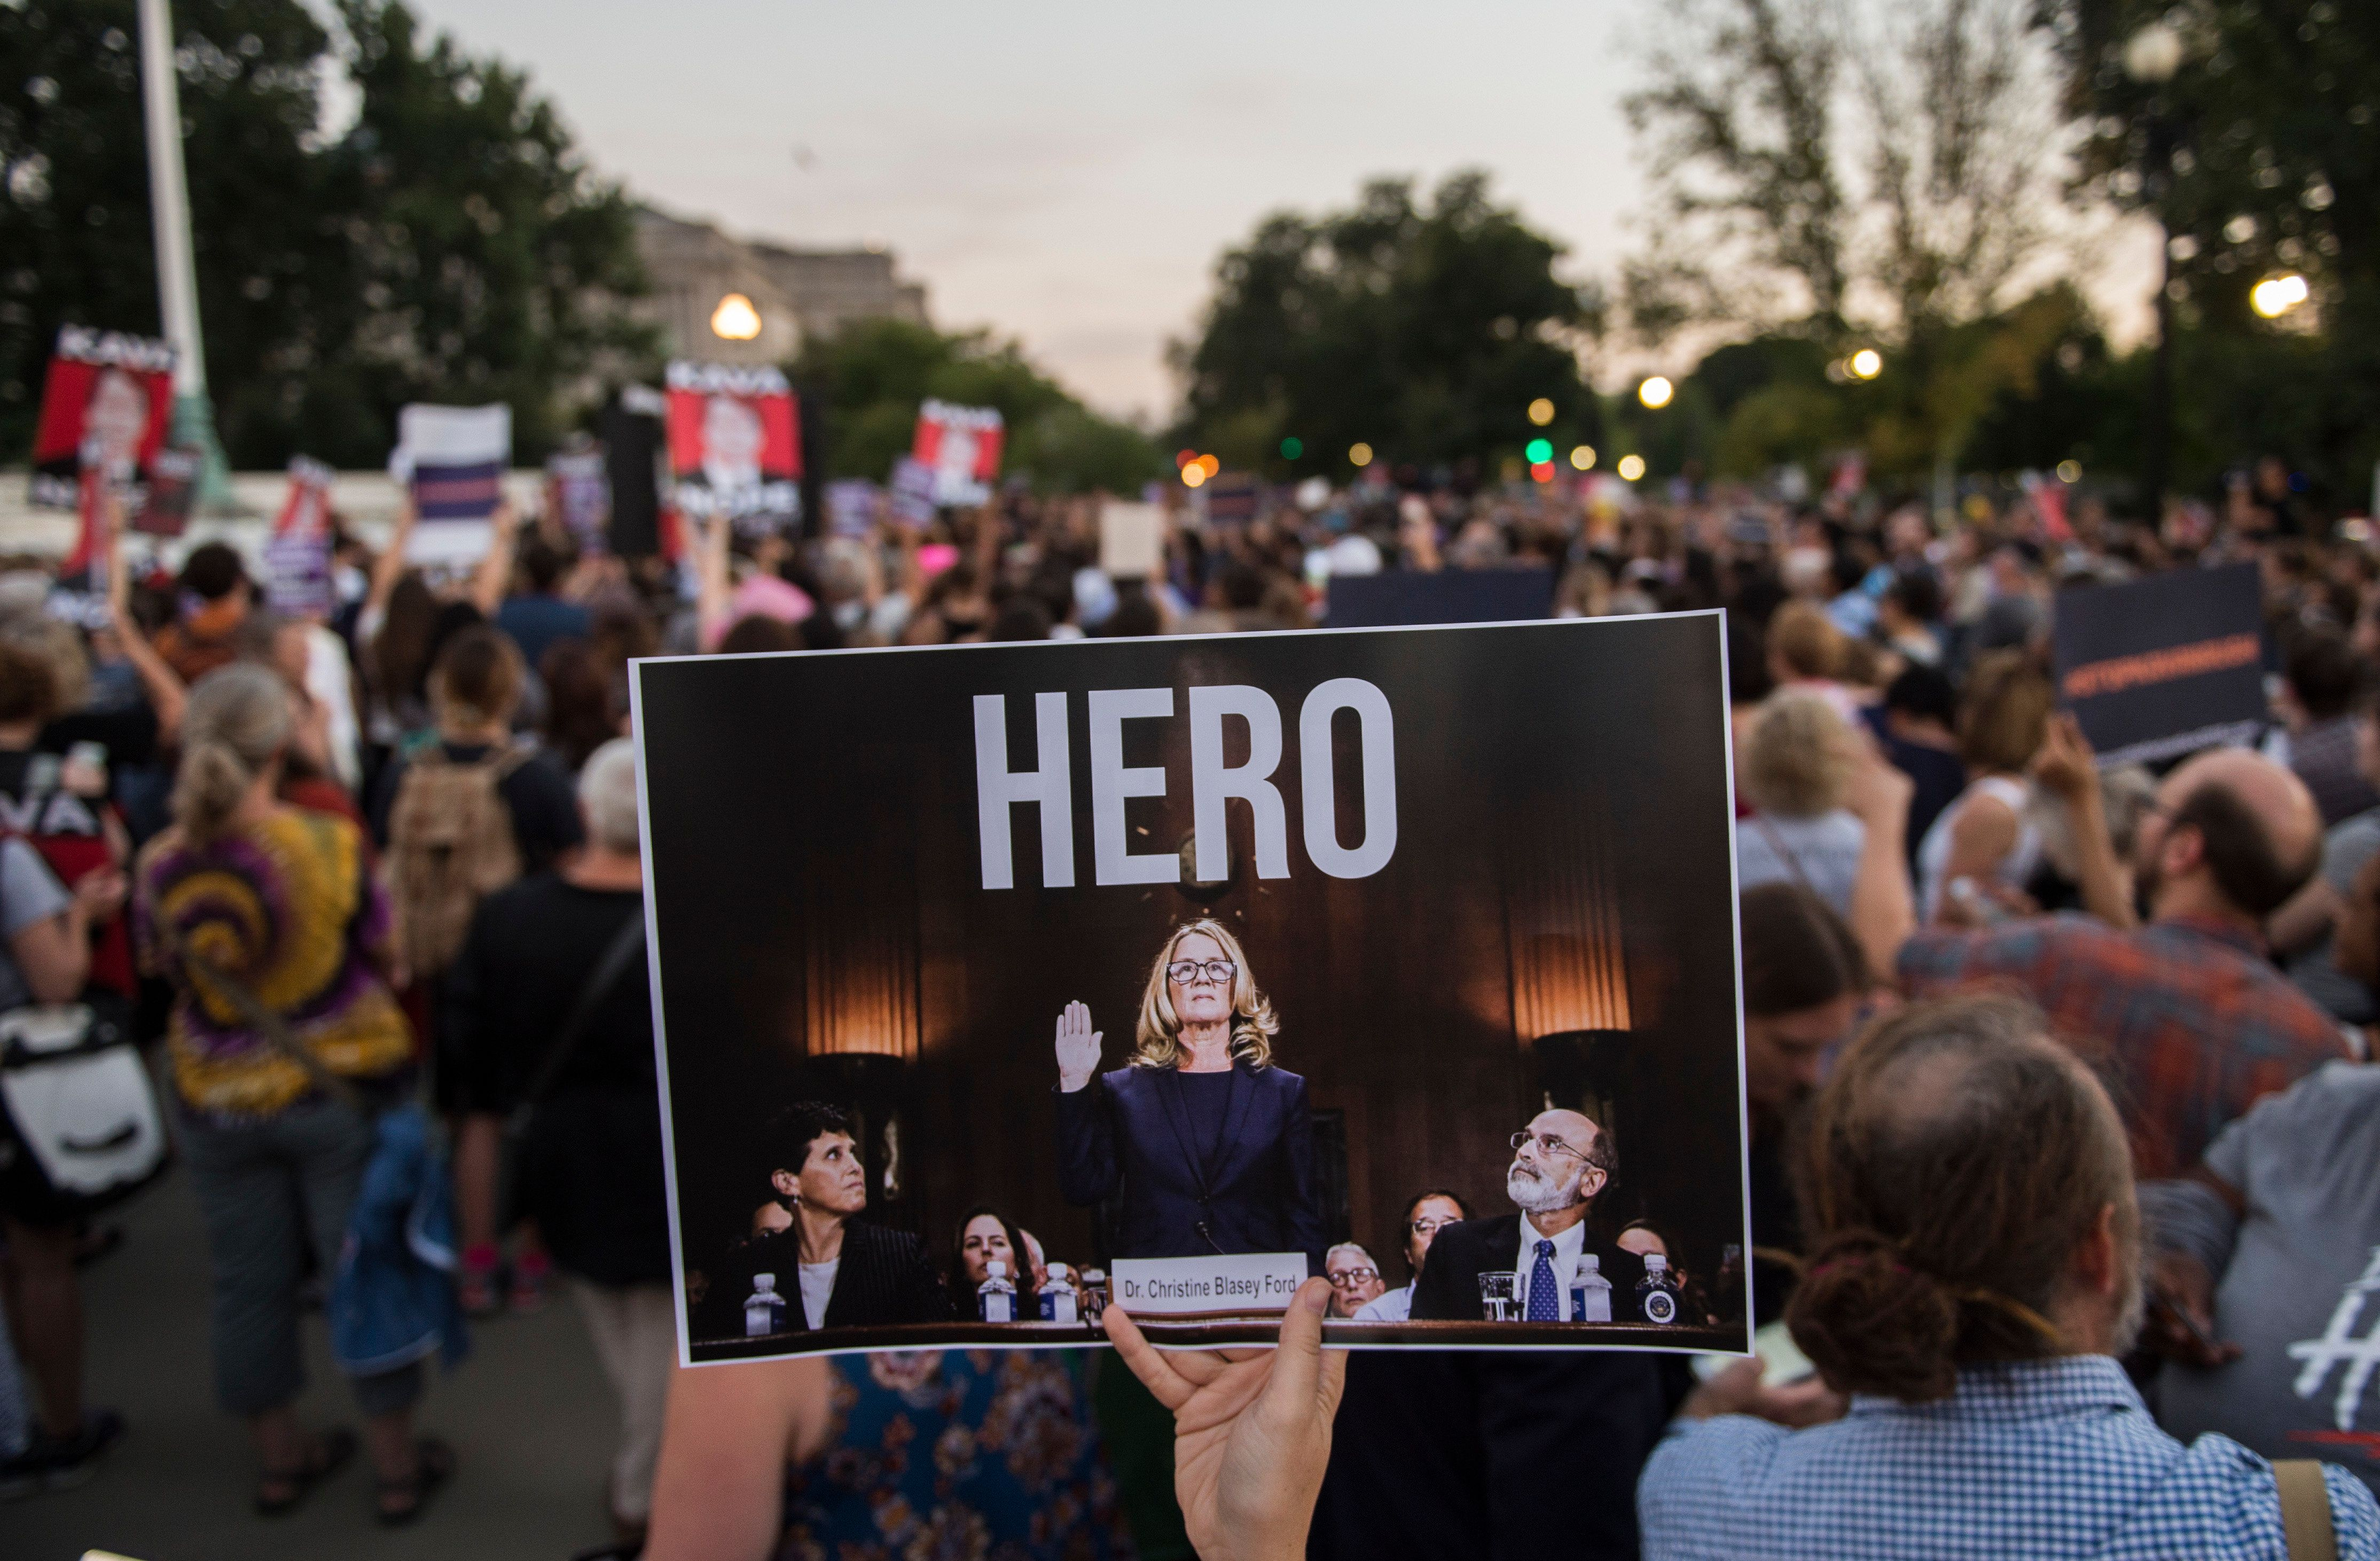 Activists take part in a protest against US Supreme Court nominee Brett Kavanaugh in Washington, DC, on October 3, 2018. (Photo by ANDREW CABALLERO-REYNOLDS / AFP)        (Photo credit should read ANDREW CABALLERO-REYNOLDS/AFP/Getty Images)